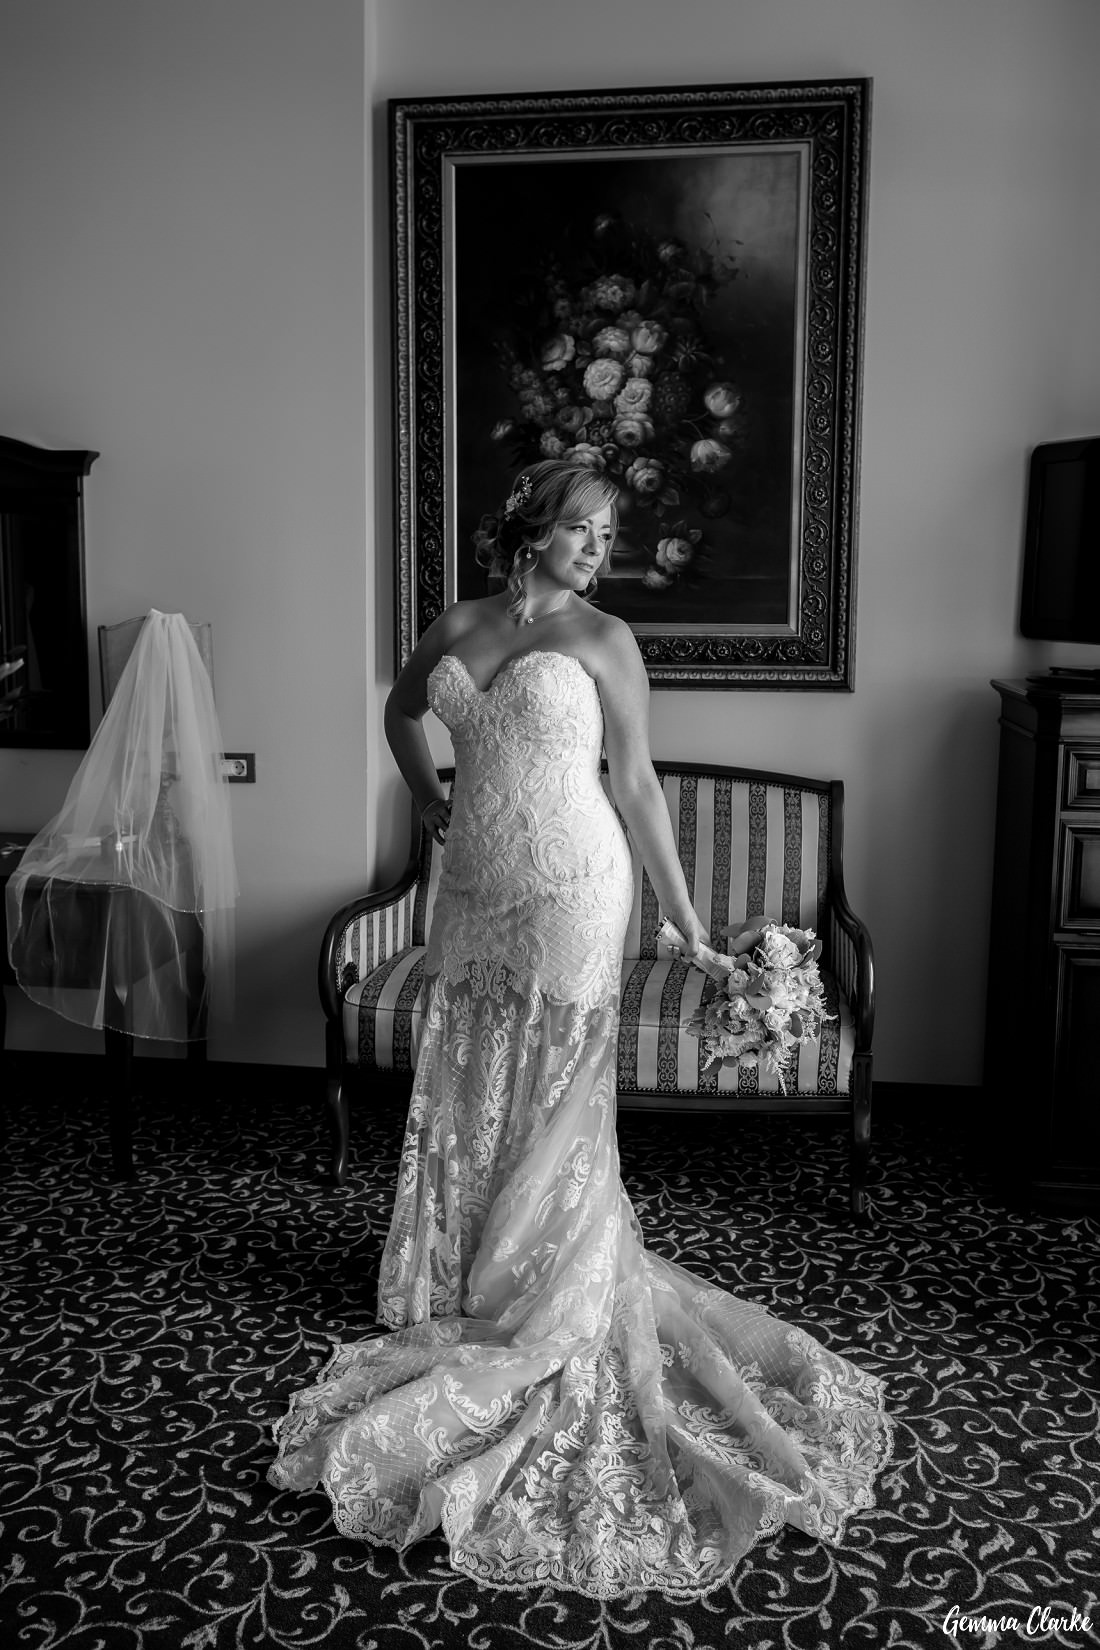 Stunning portrait of bride standing with lace wedding dress train spread out in front of her while standing in front of a large painting at this Dubrovnik Destination Wedding